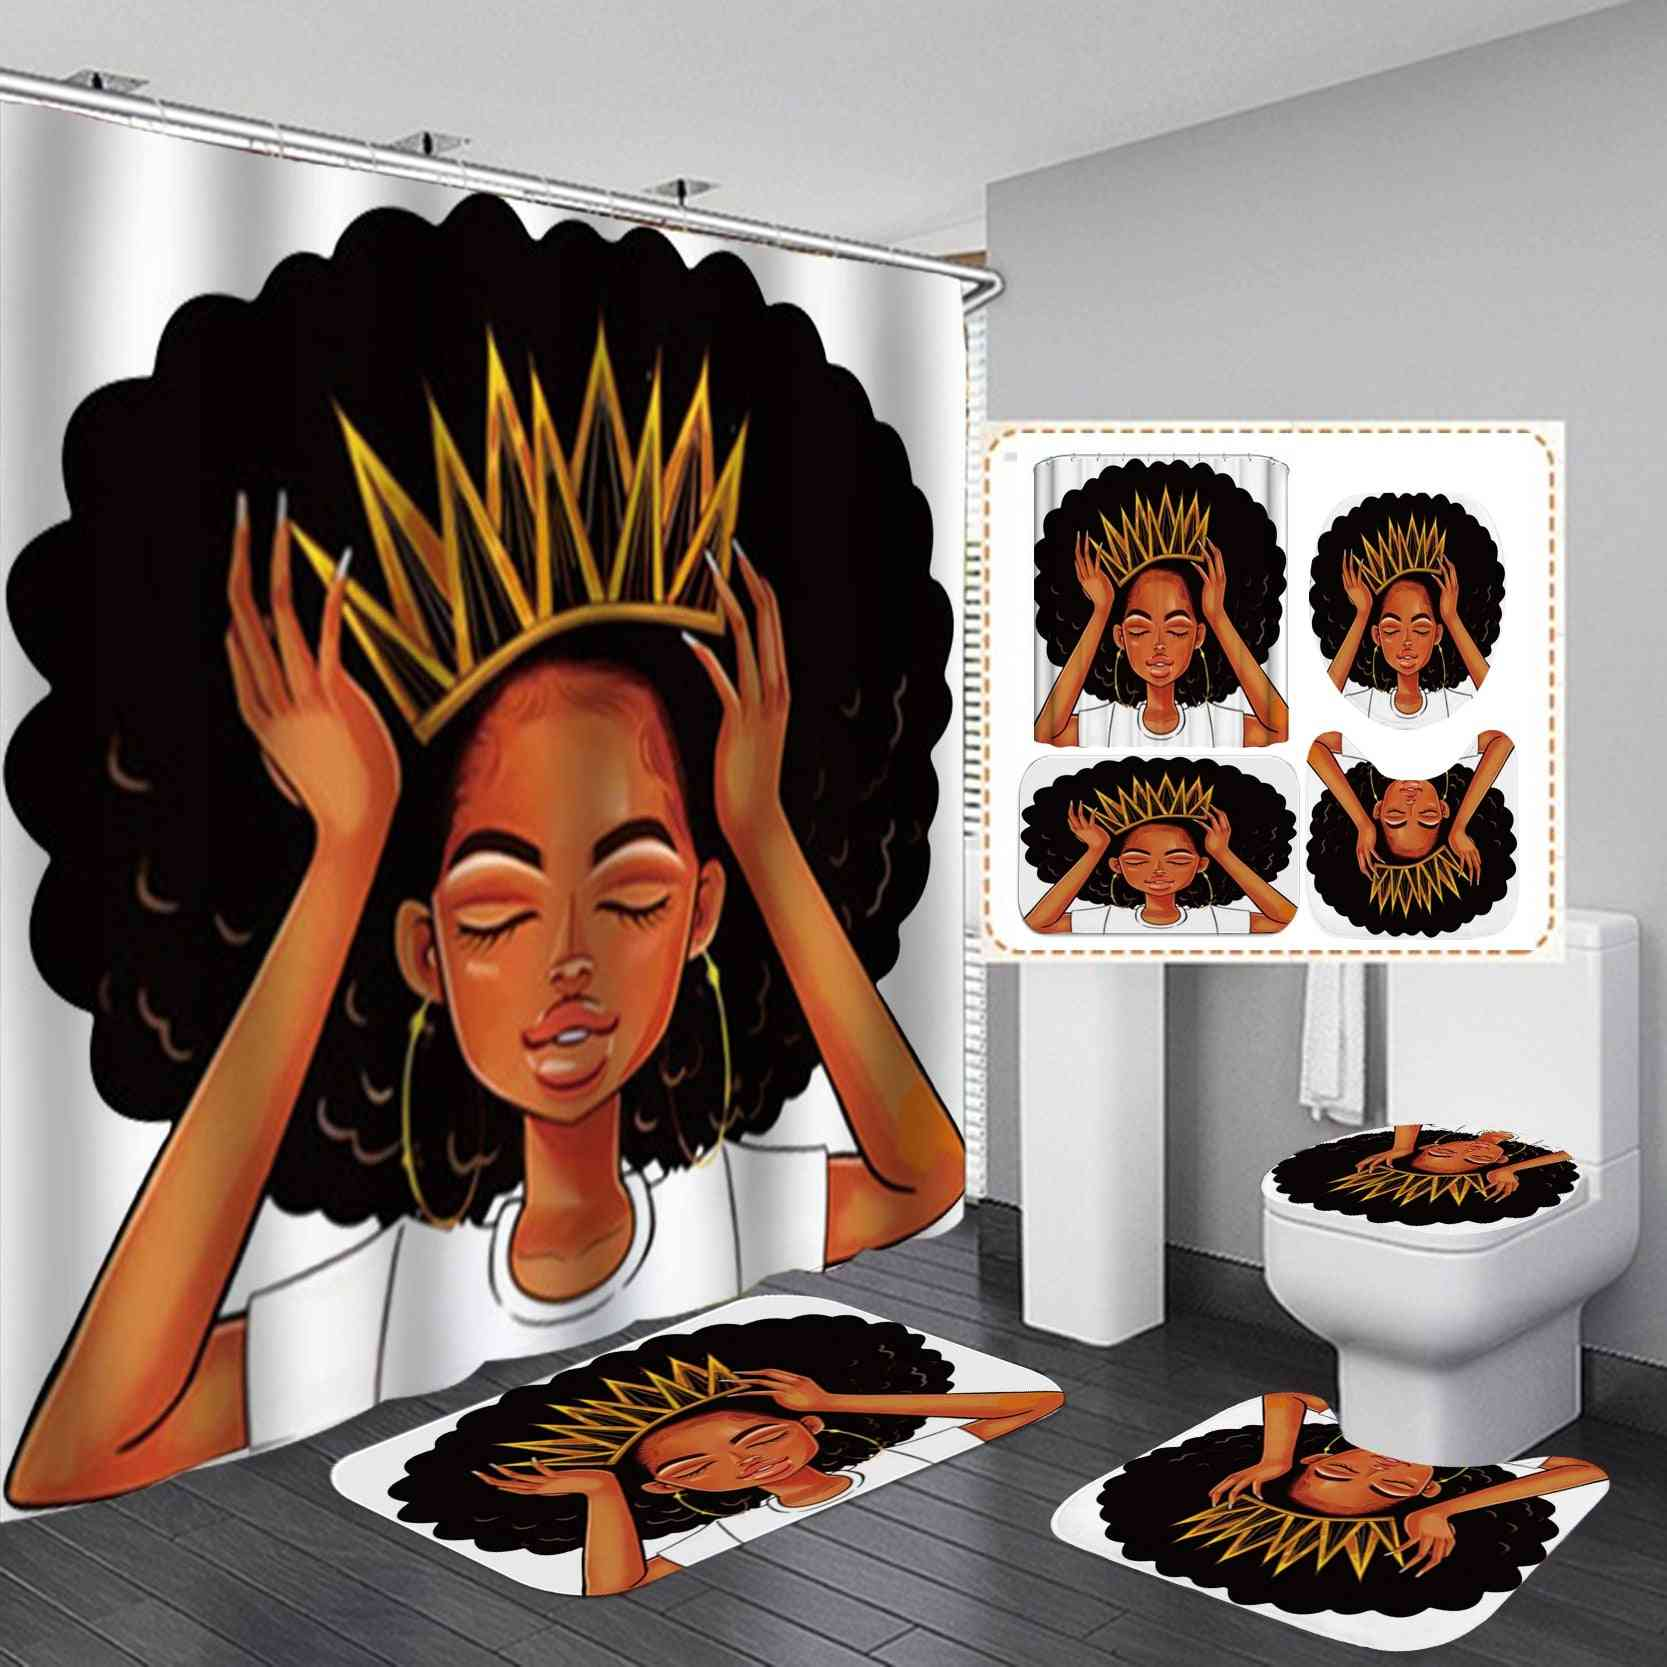 African American Women With Crown Shower Curtain Queen Princess Bath Curtains With Rugs Toilet Seat Cover Set